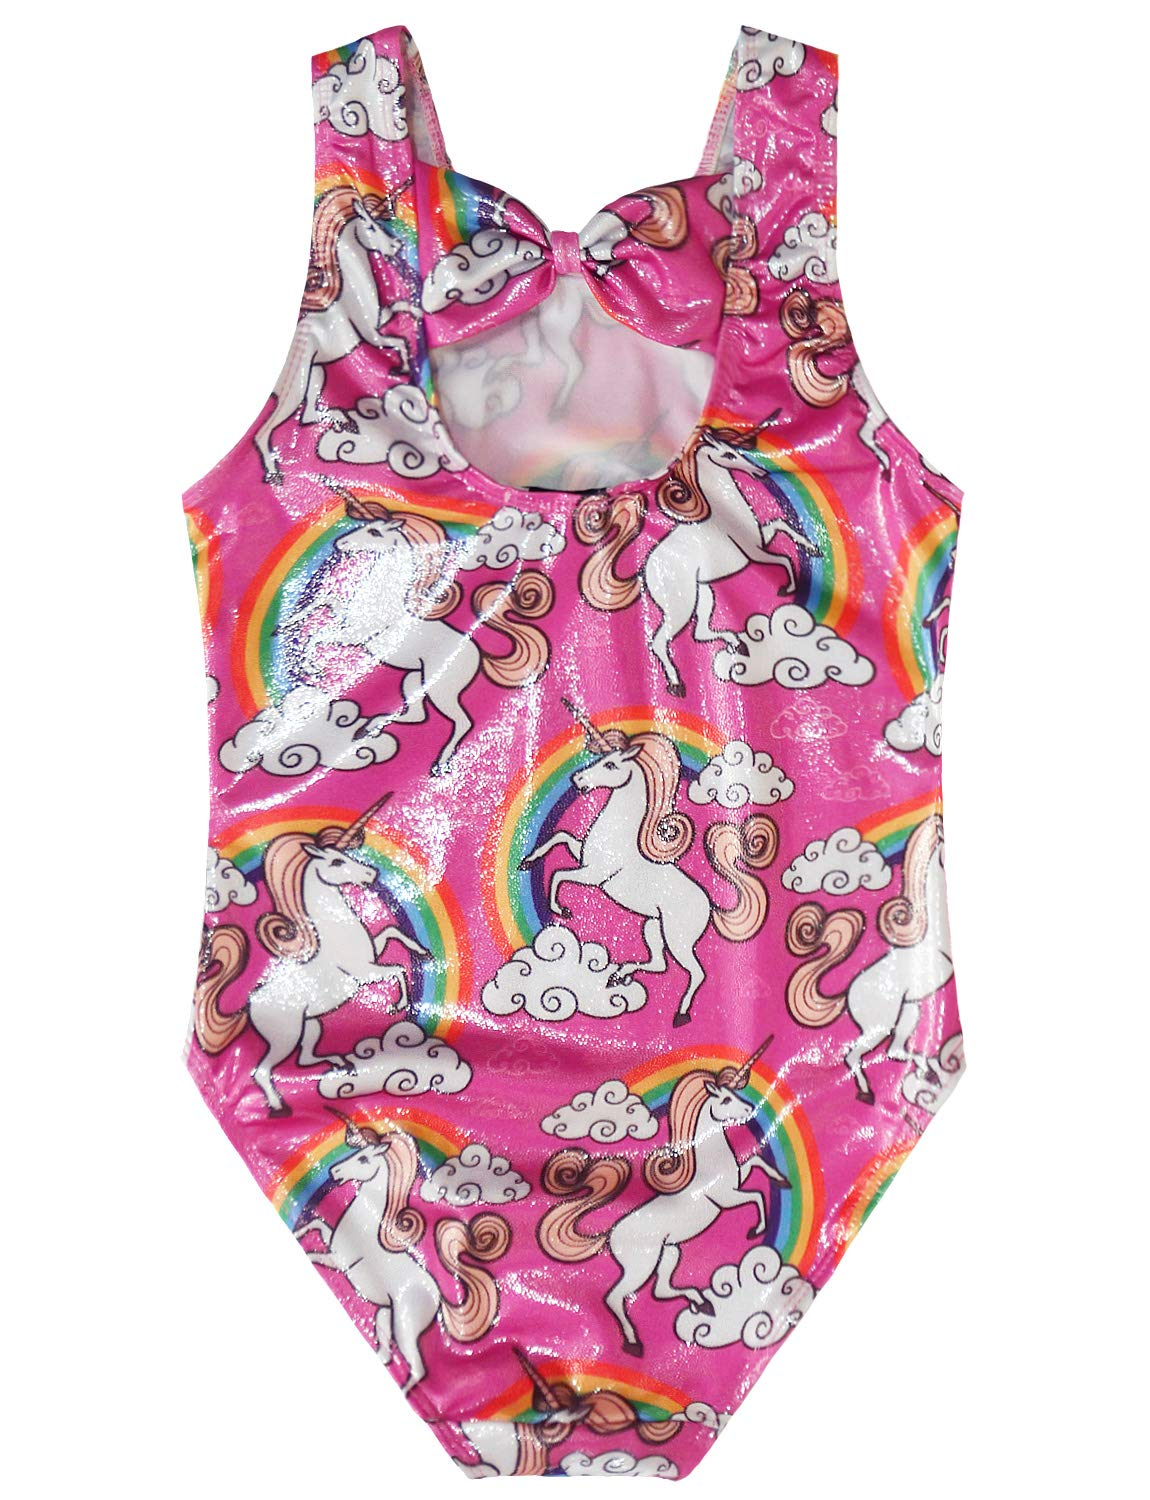 Gymnastics Leotards for Girls Sparkly Unicorn Outfits Activewear Quick Dry 4